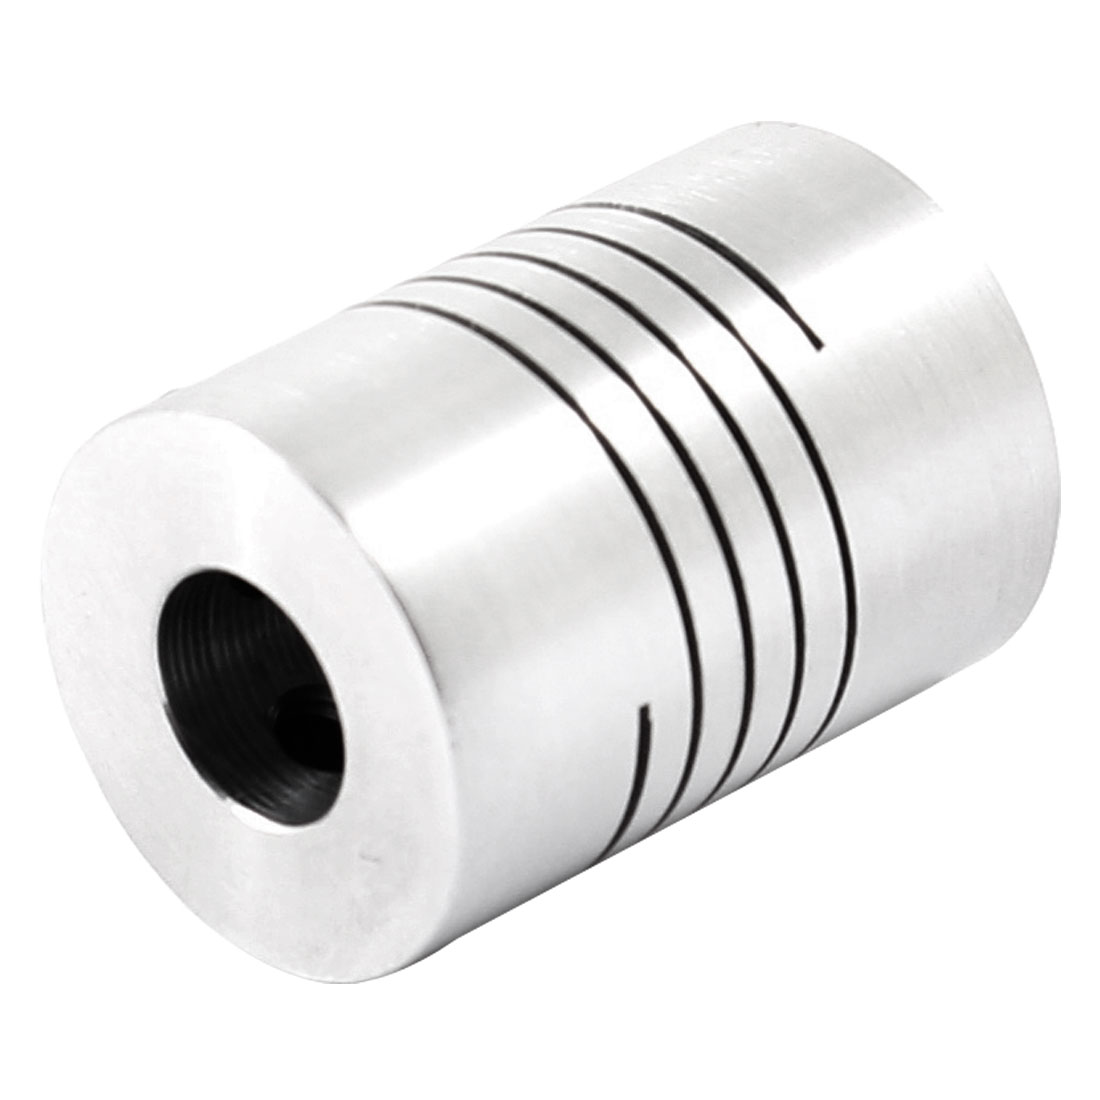 6mmx8mm 18mm Dia 25mm Length CNC Shaft Coupler Coupling Connect Motor Encoder